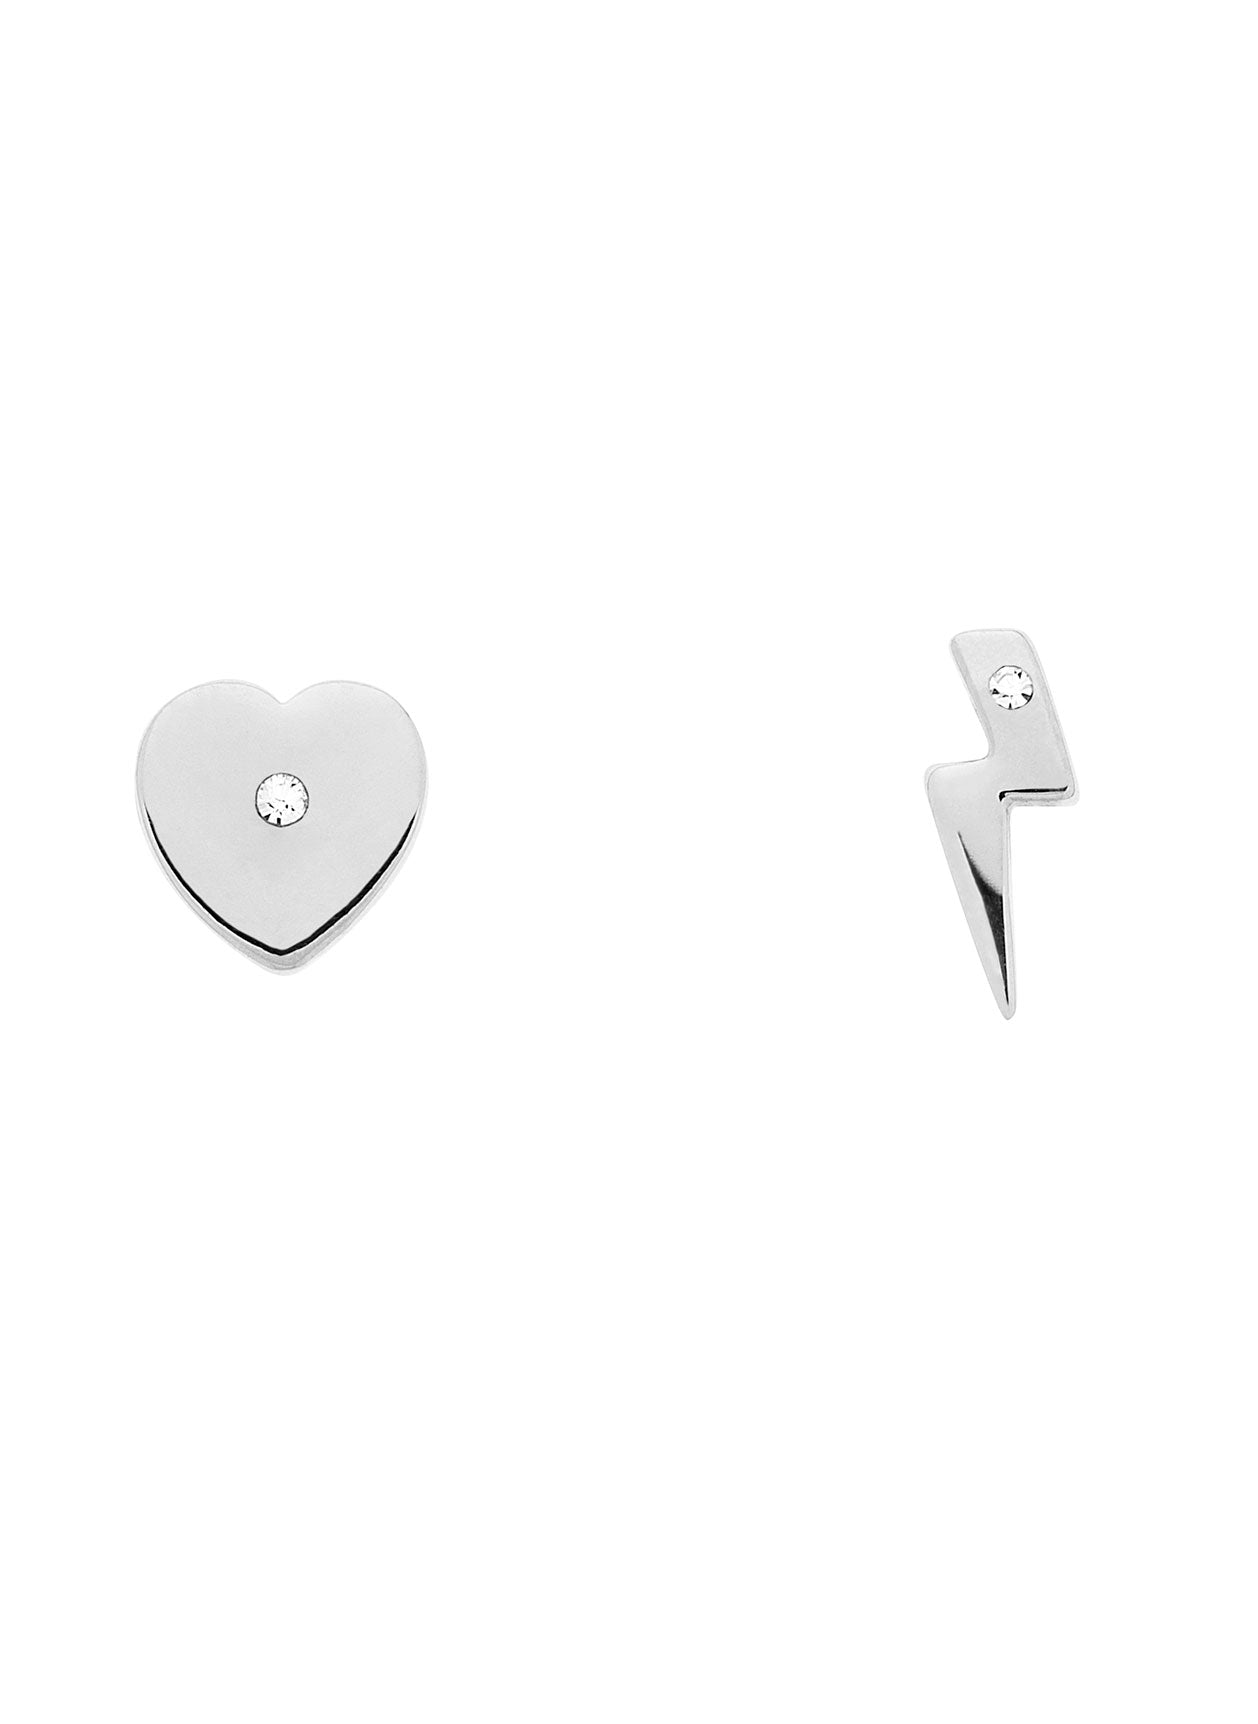 Rhodium Swarovski Heart/Lightning Earrings